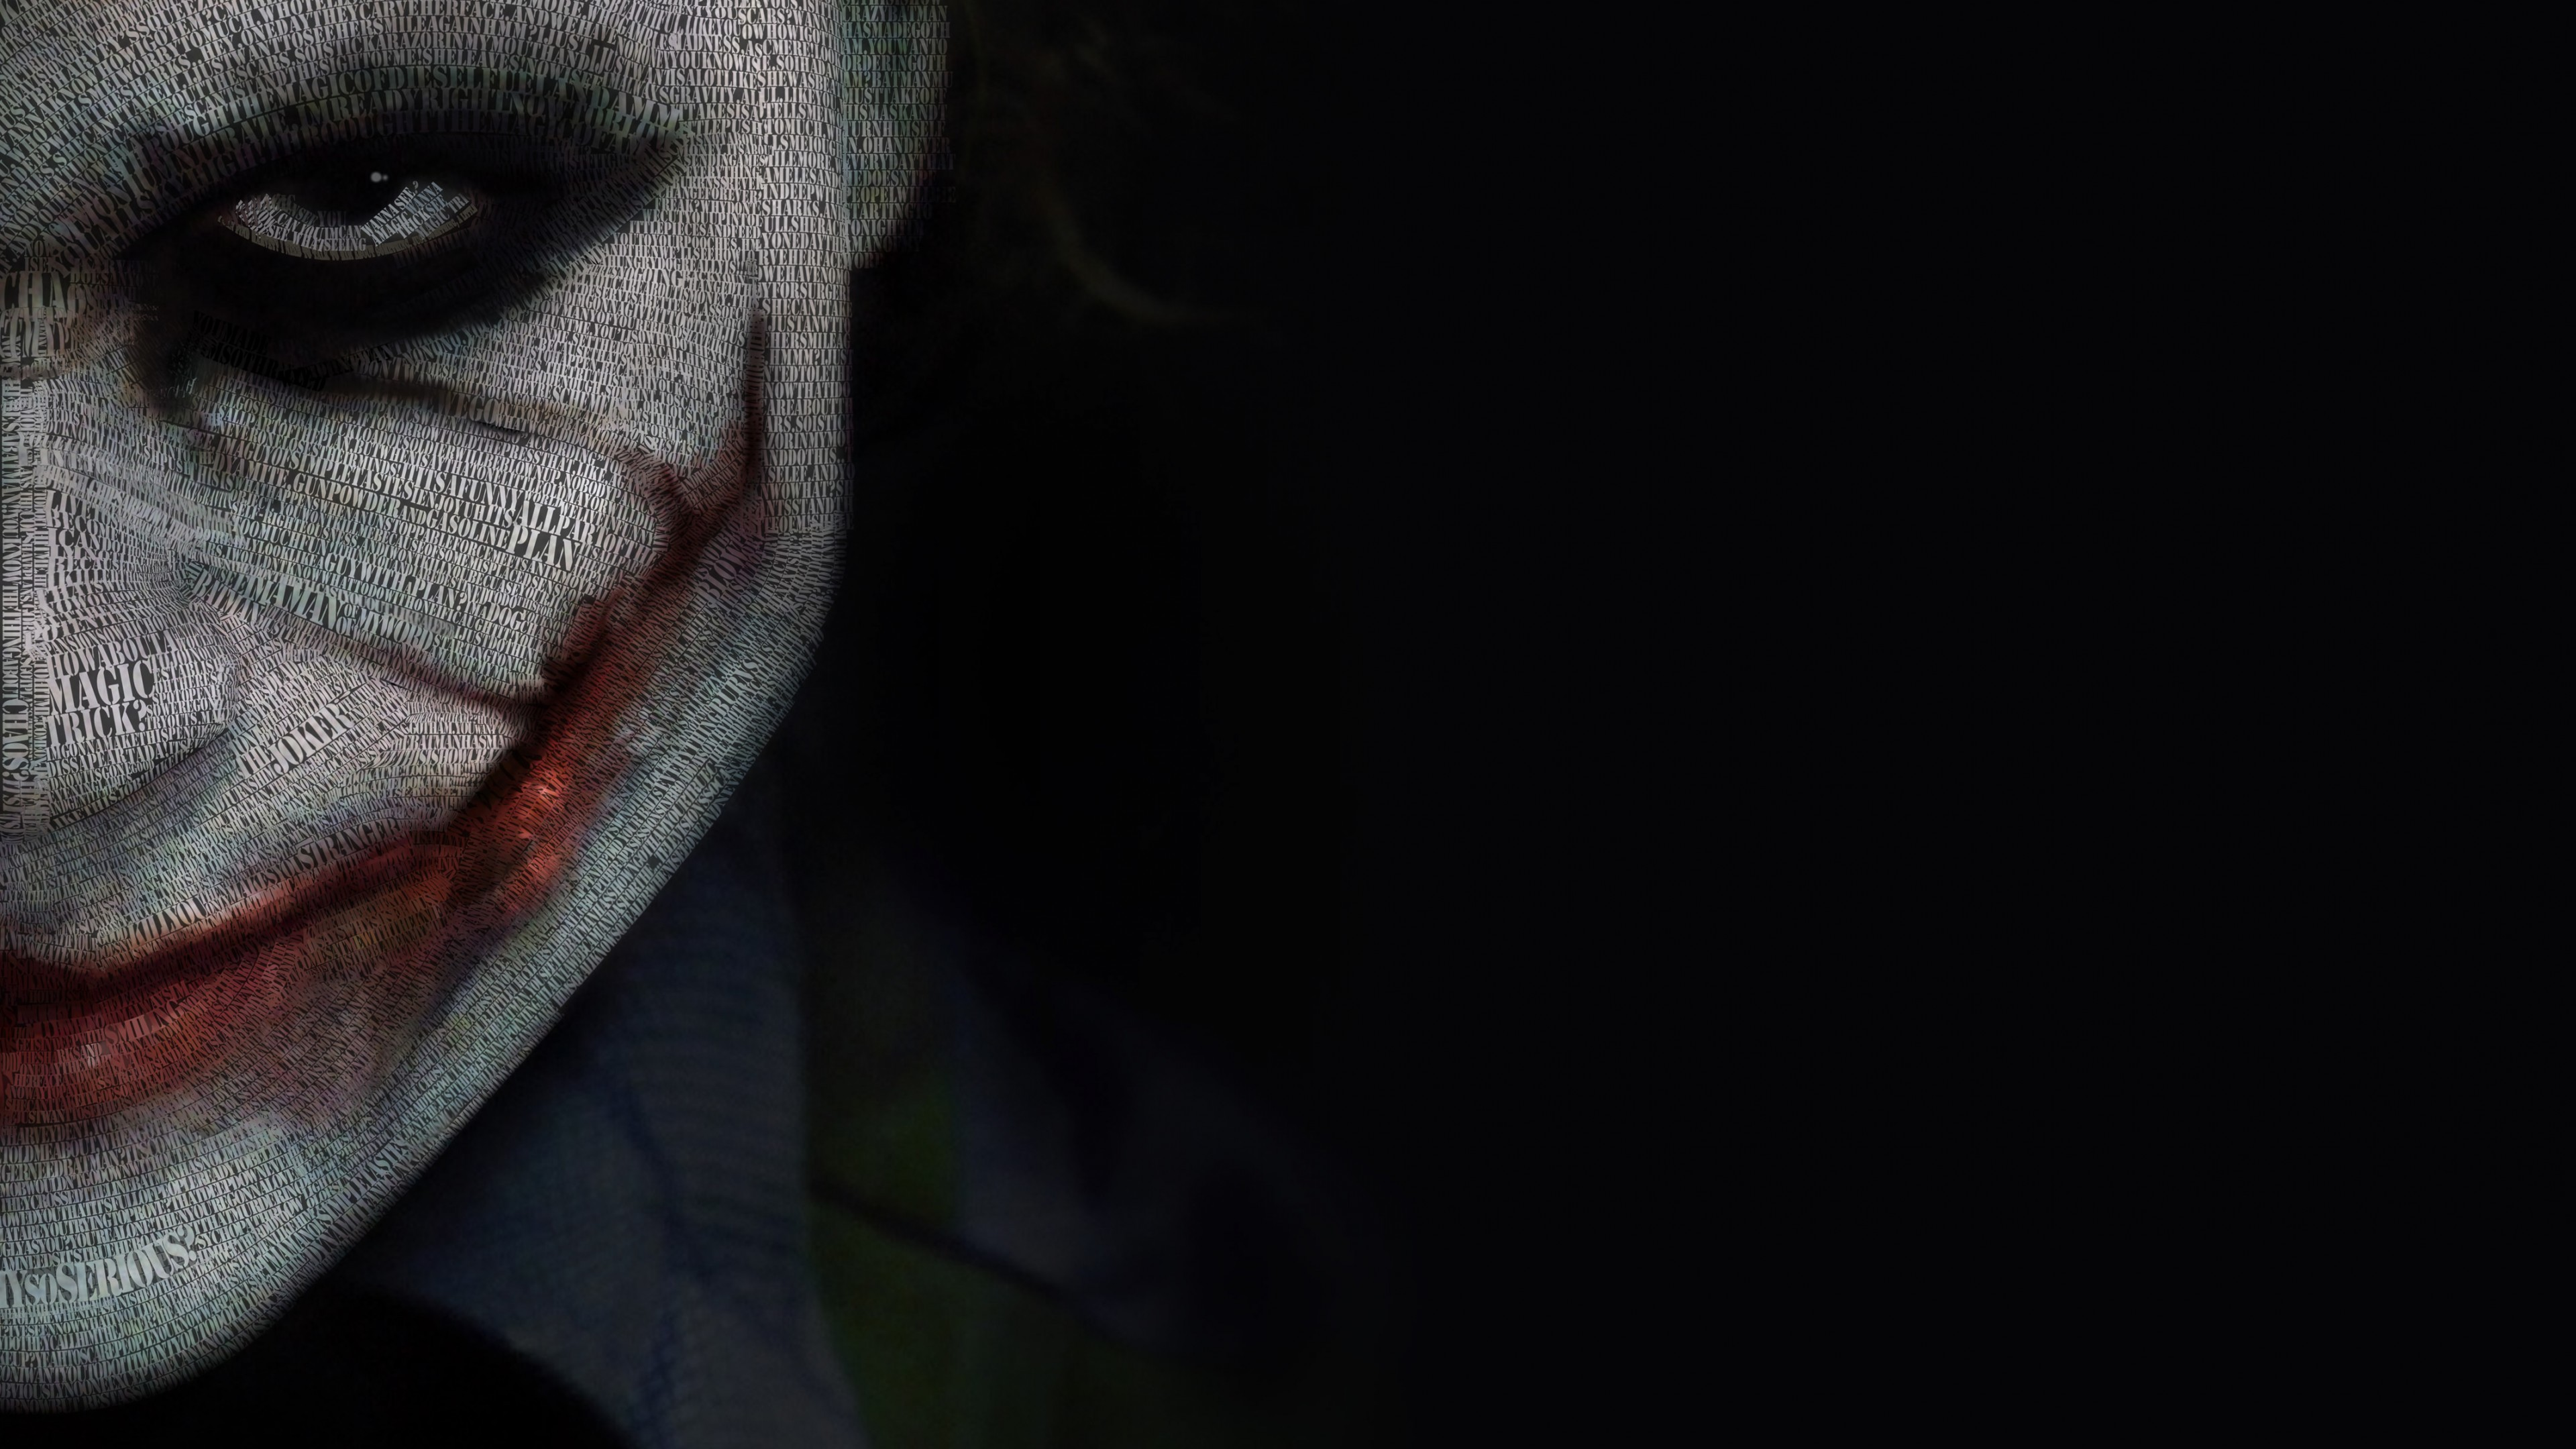 joker wallpapers photos and desktop backgrounds up to 8k 7680x4320